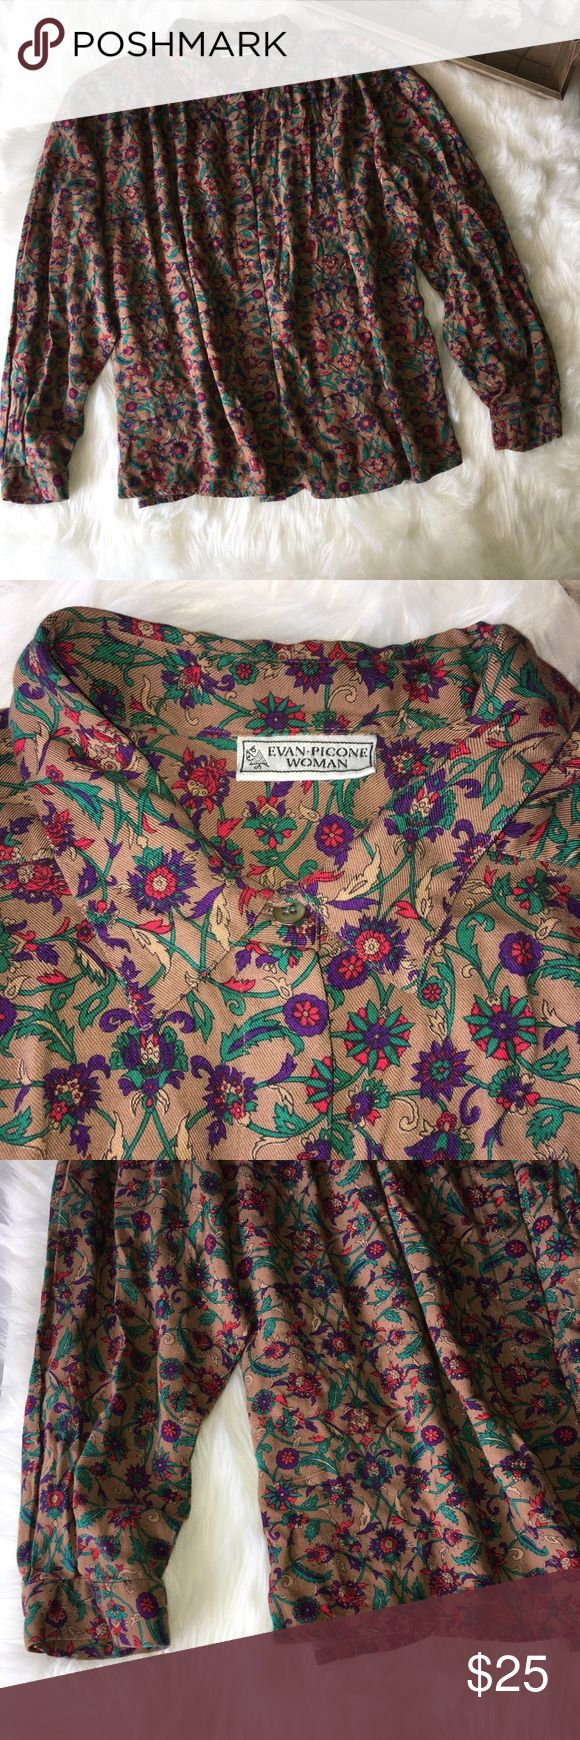 Evan Picone Brown Floral Button Down Blouse Stunning Evan Picone women's brown vine Floral print button down blouse top in excellent preowned condition size medium Evan Picone Tops Button Down Shirts